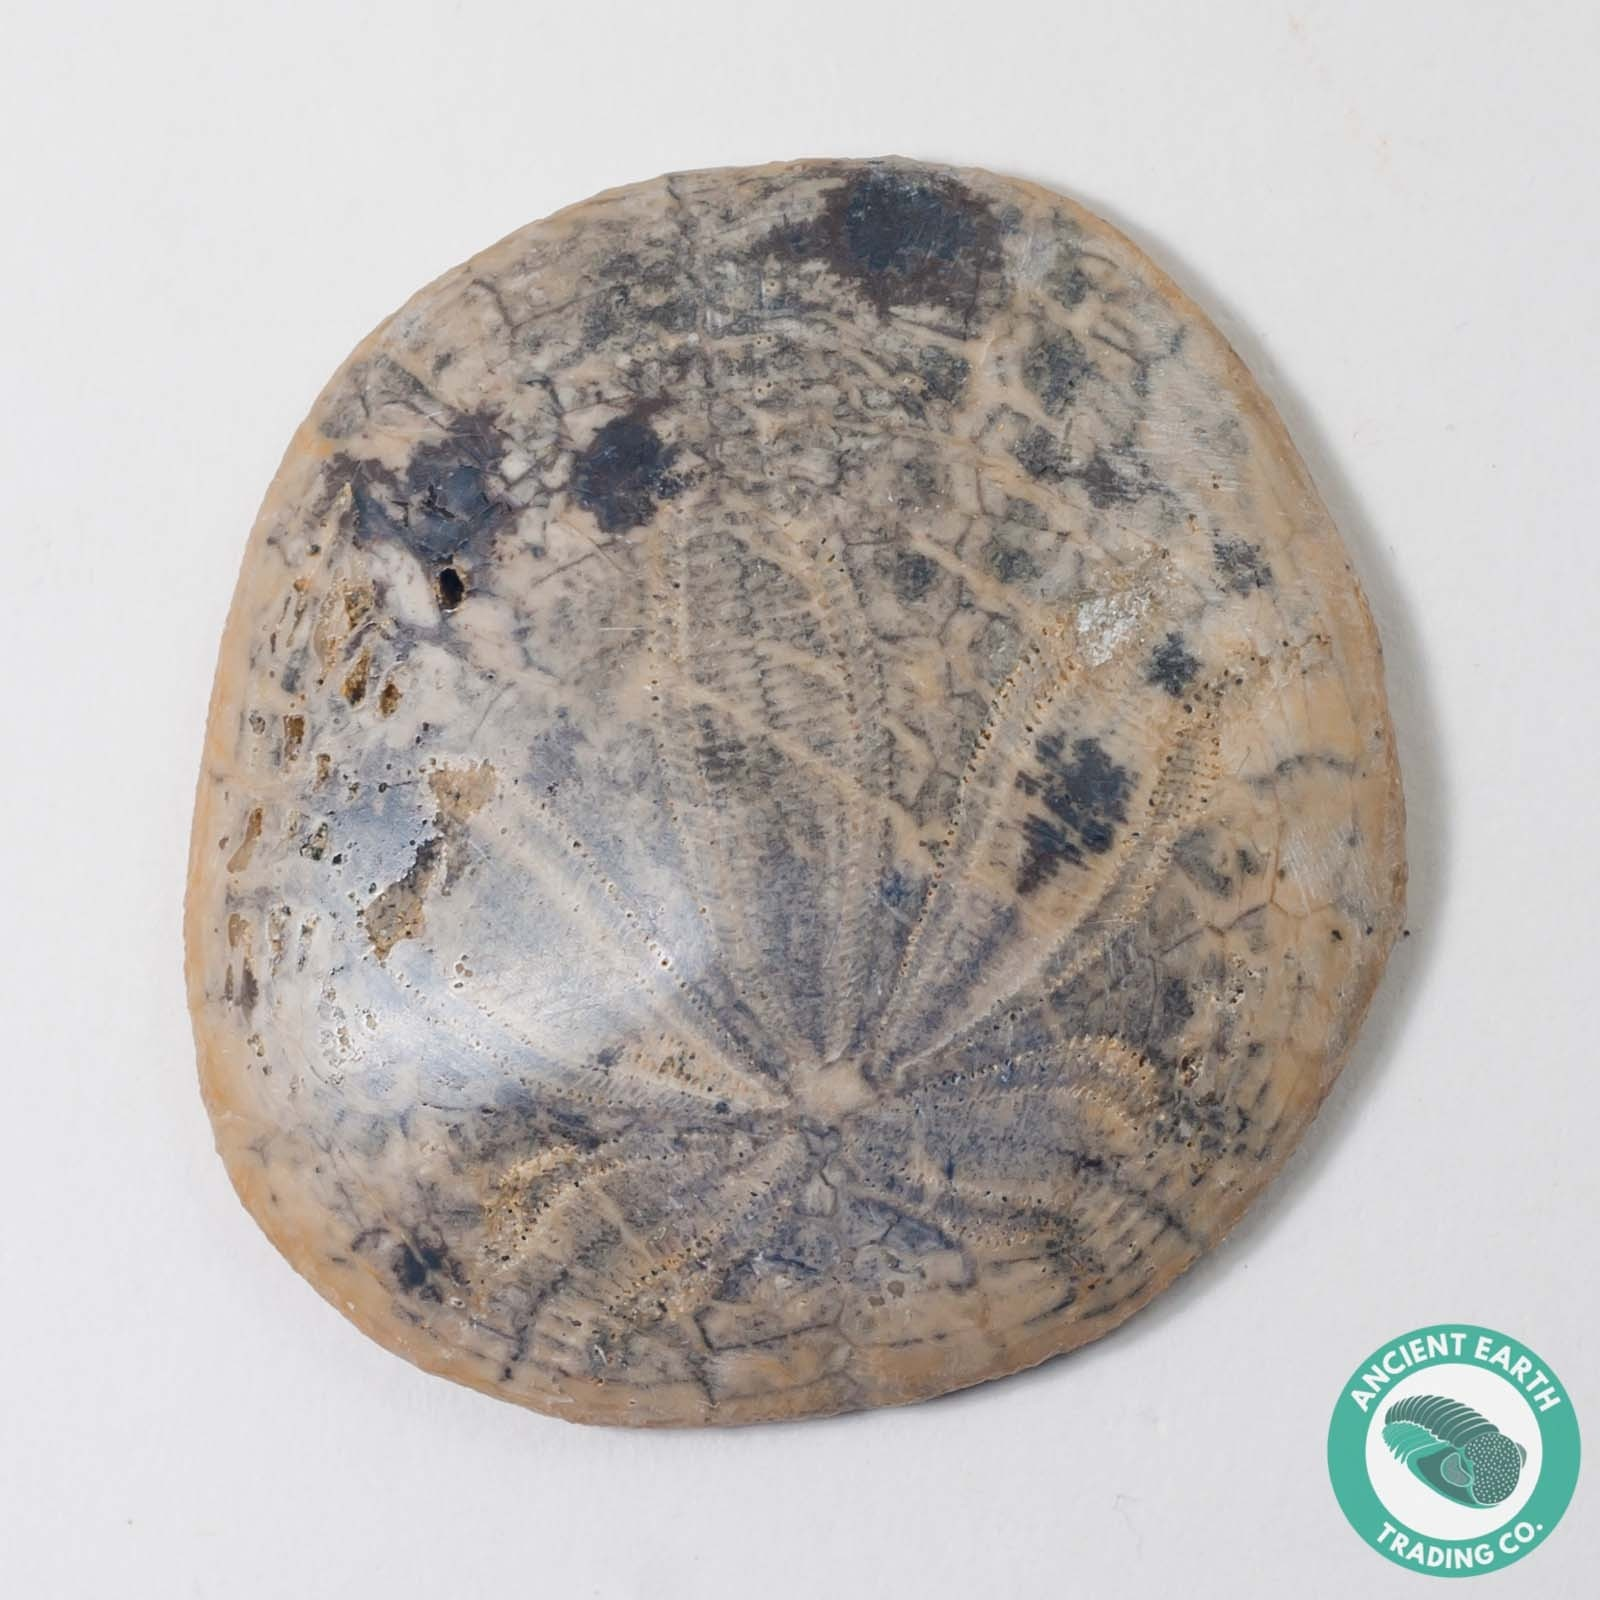 1.8 in Polished Sand Dollar Fossil Dendraster gibbsii - California